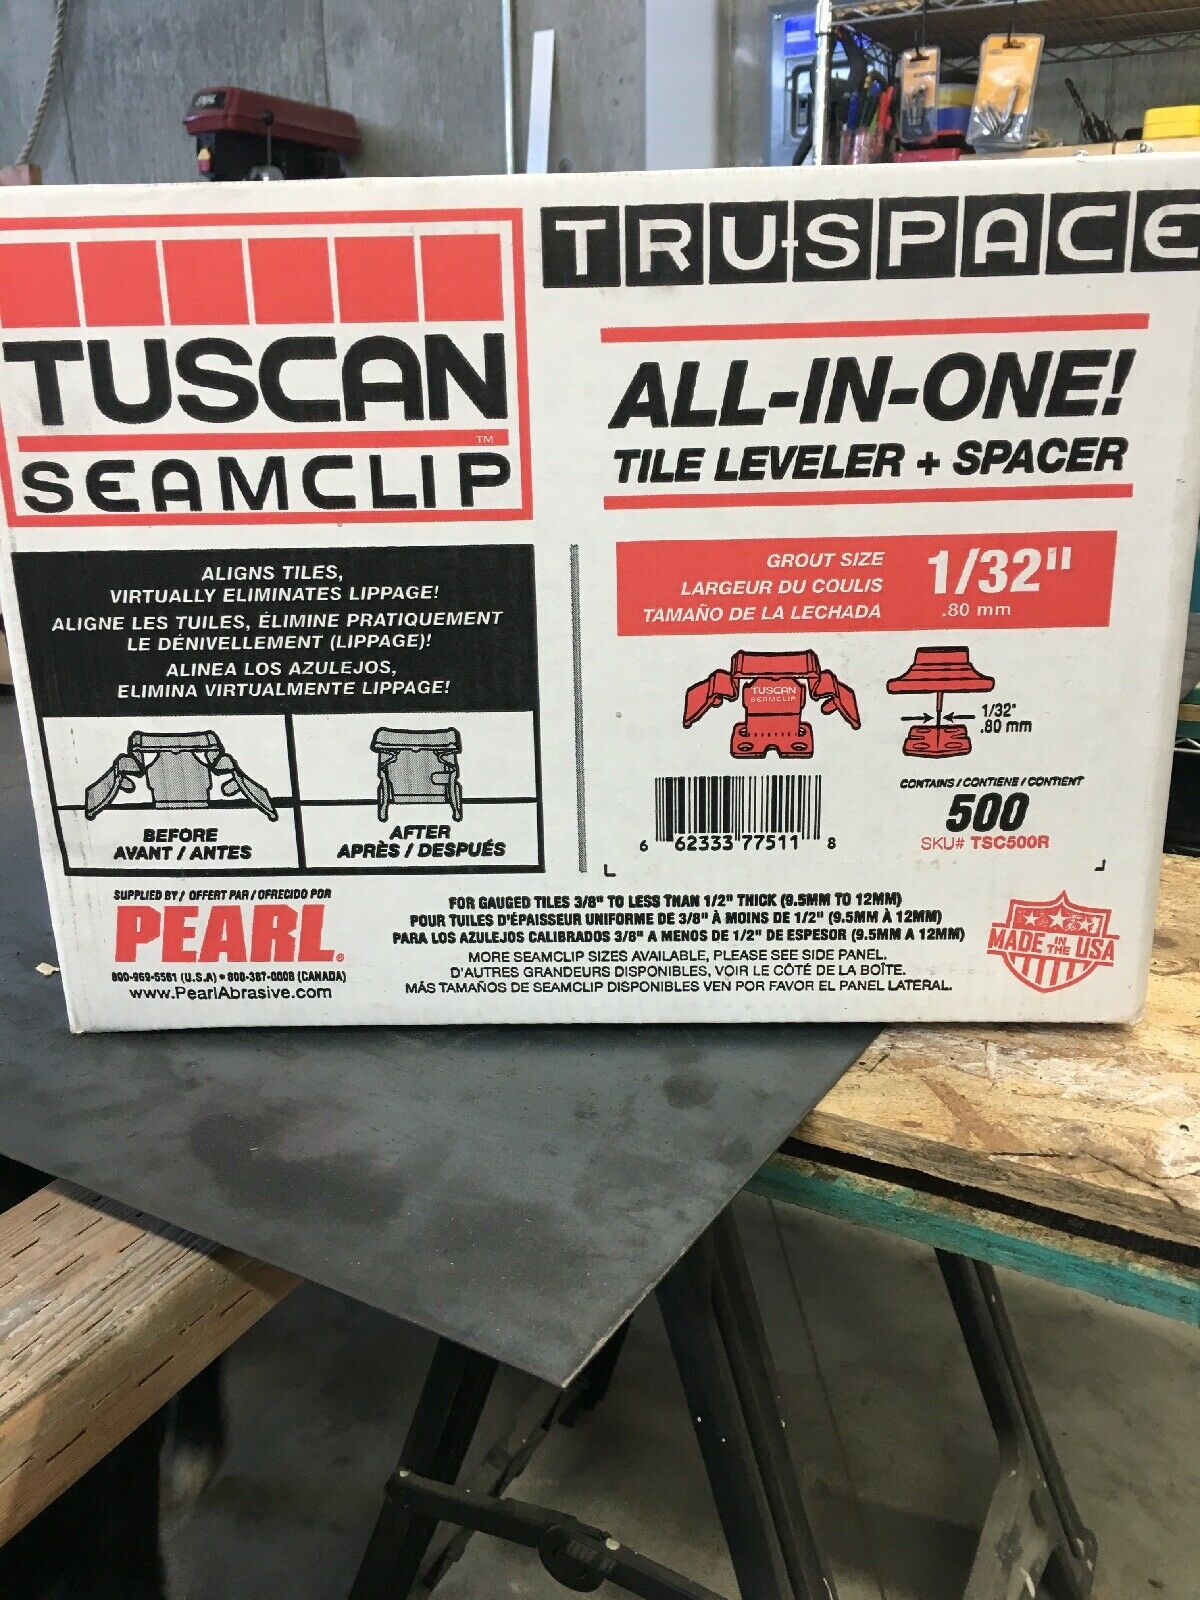 Tuscan TruSpace Red Seam Clips, Tile Flooring Leveling System, 500 box